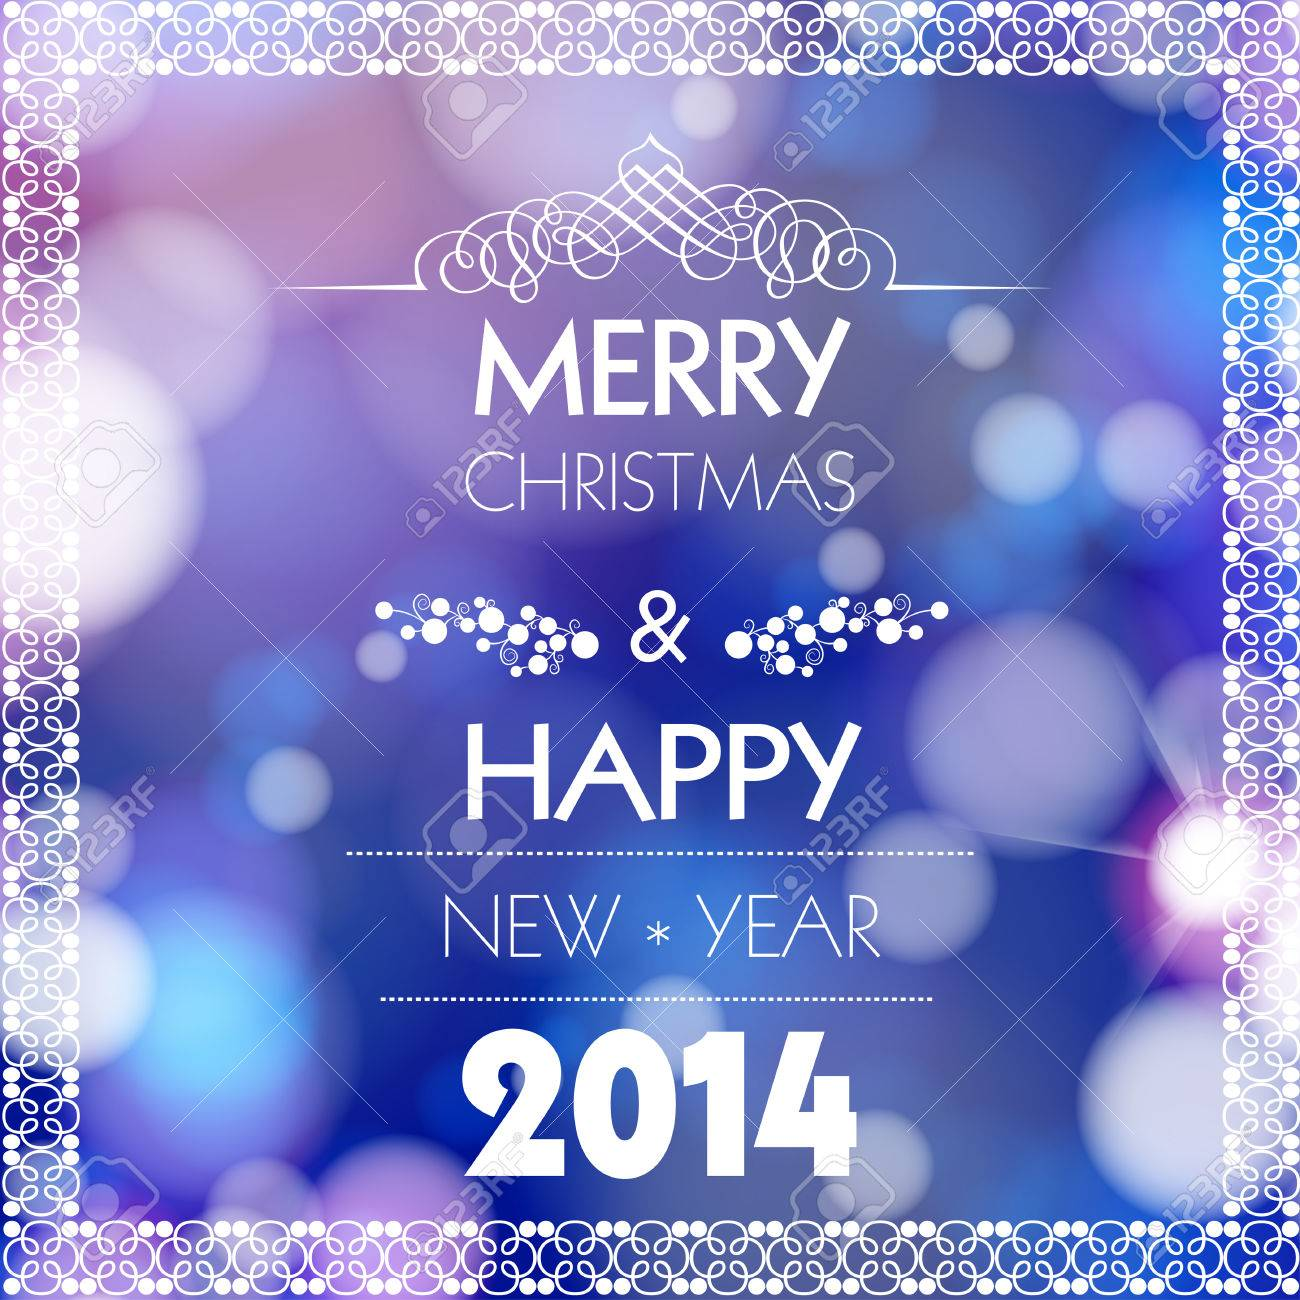 Merry christmas and happy new year card design easy all editable merry christmas and happy new year card design easy all editable stock vector 23202517 m4hsunfo